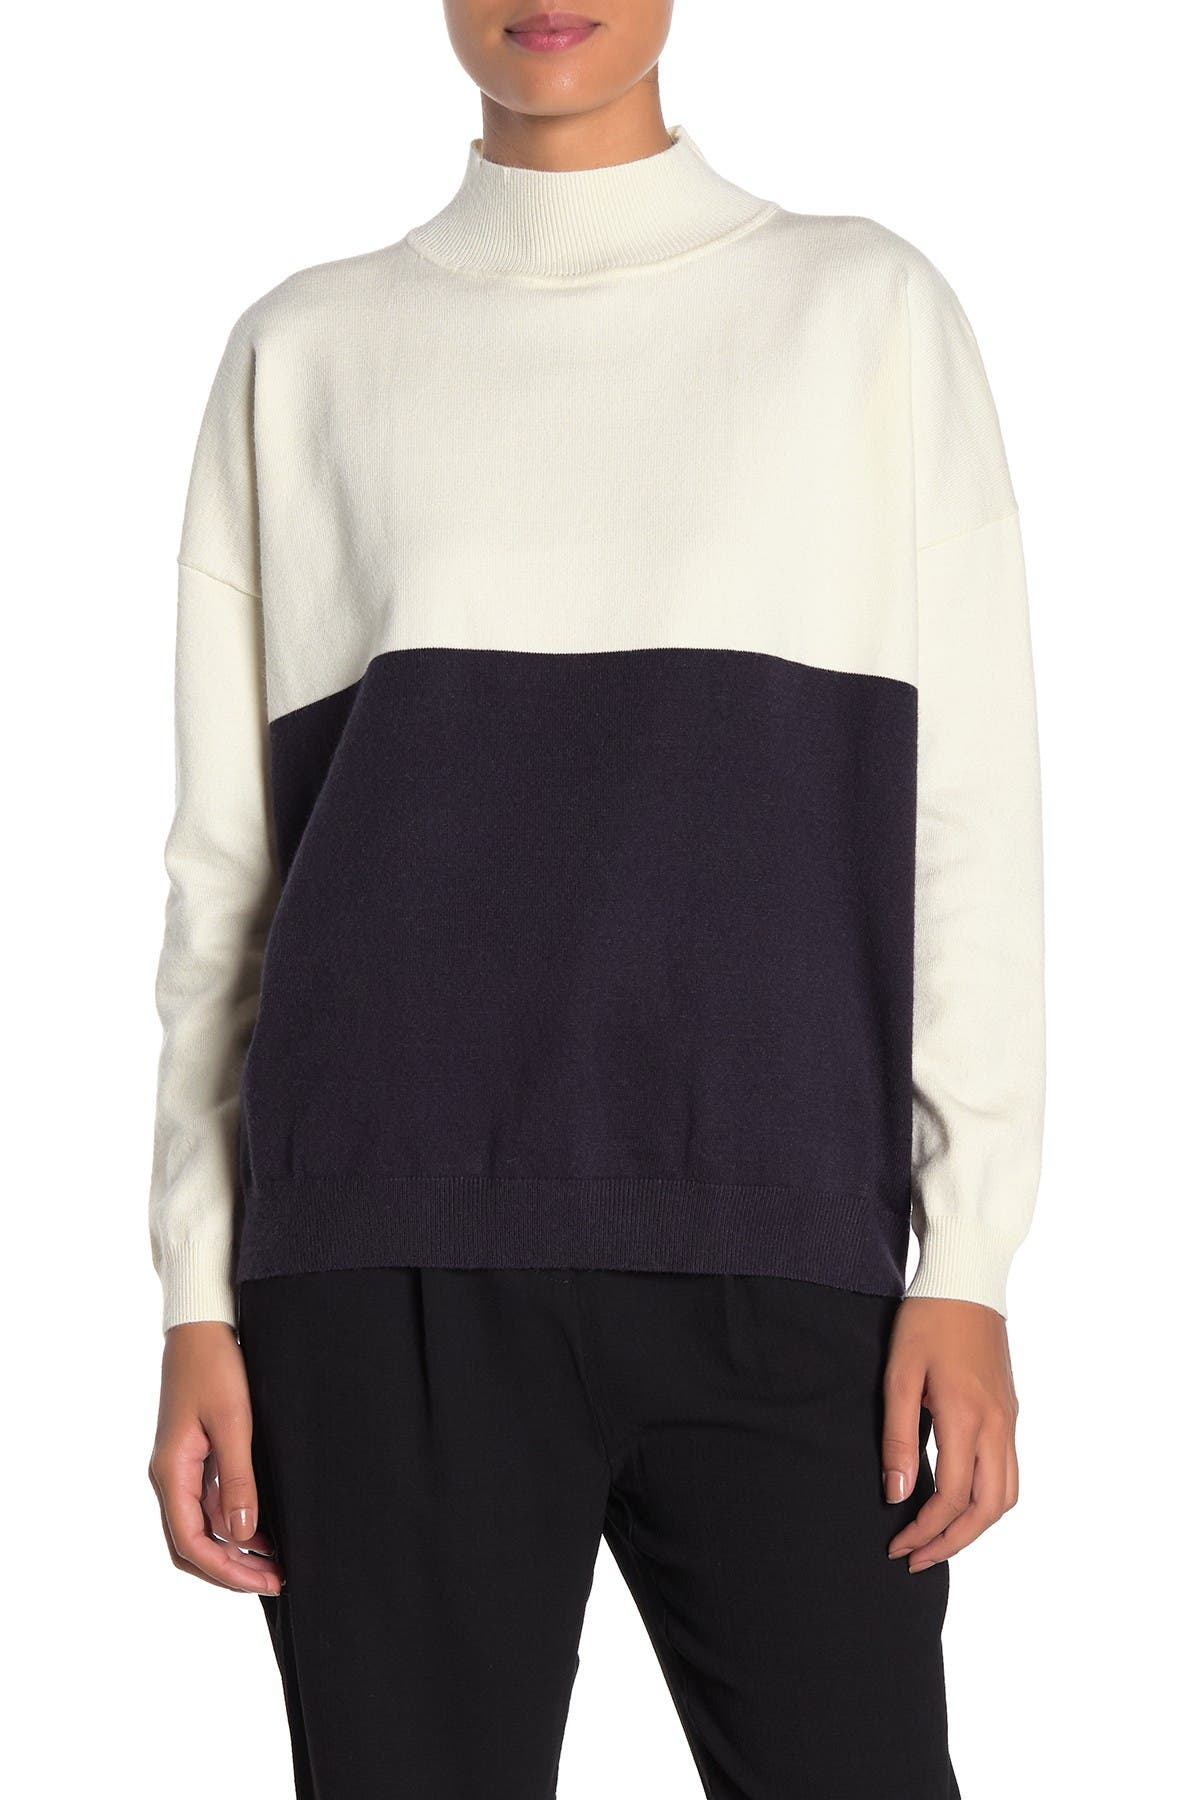 Image of FRNCH Colorblock Mock Neck Sweater